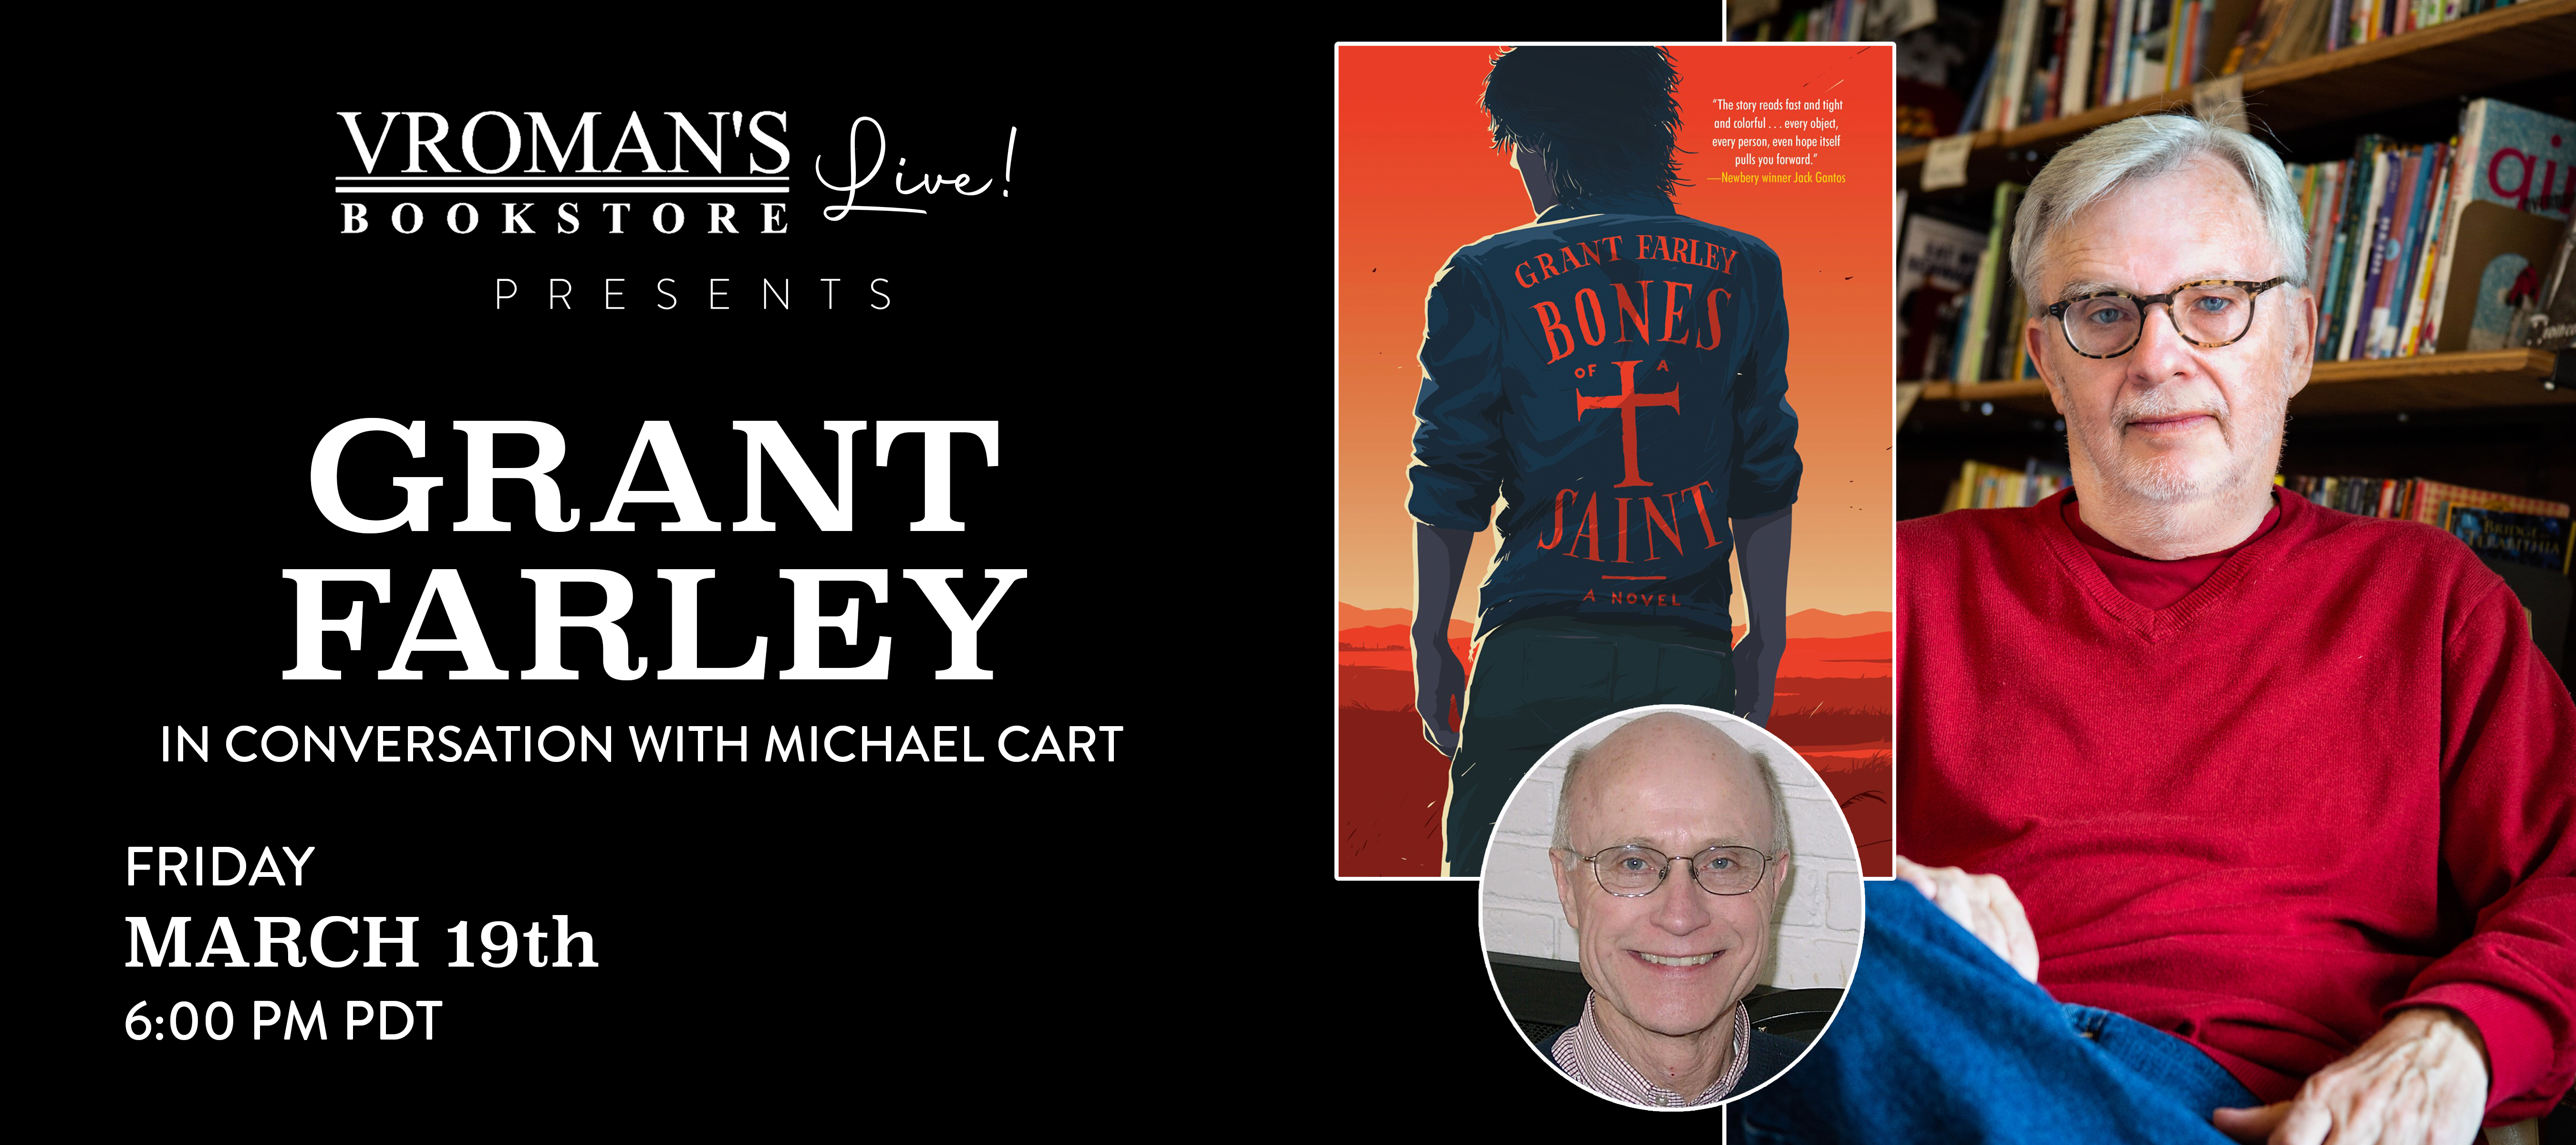 Grant Farley, in conversation with Michael Cart, on Friday March 19th at 6pm